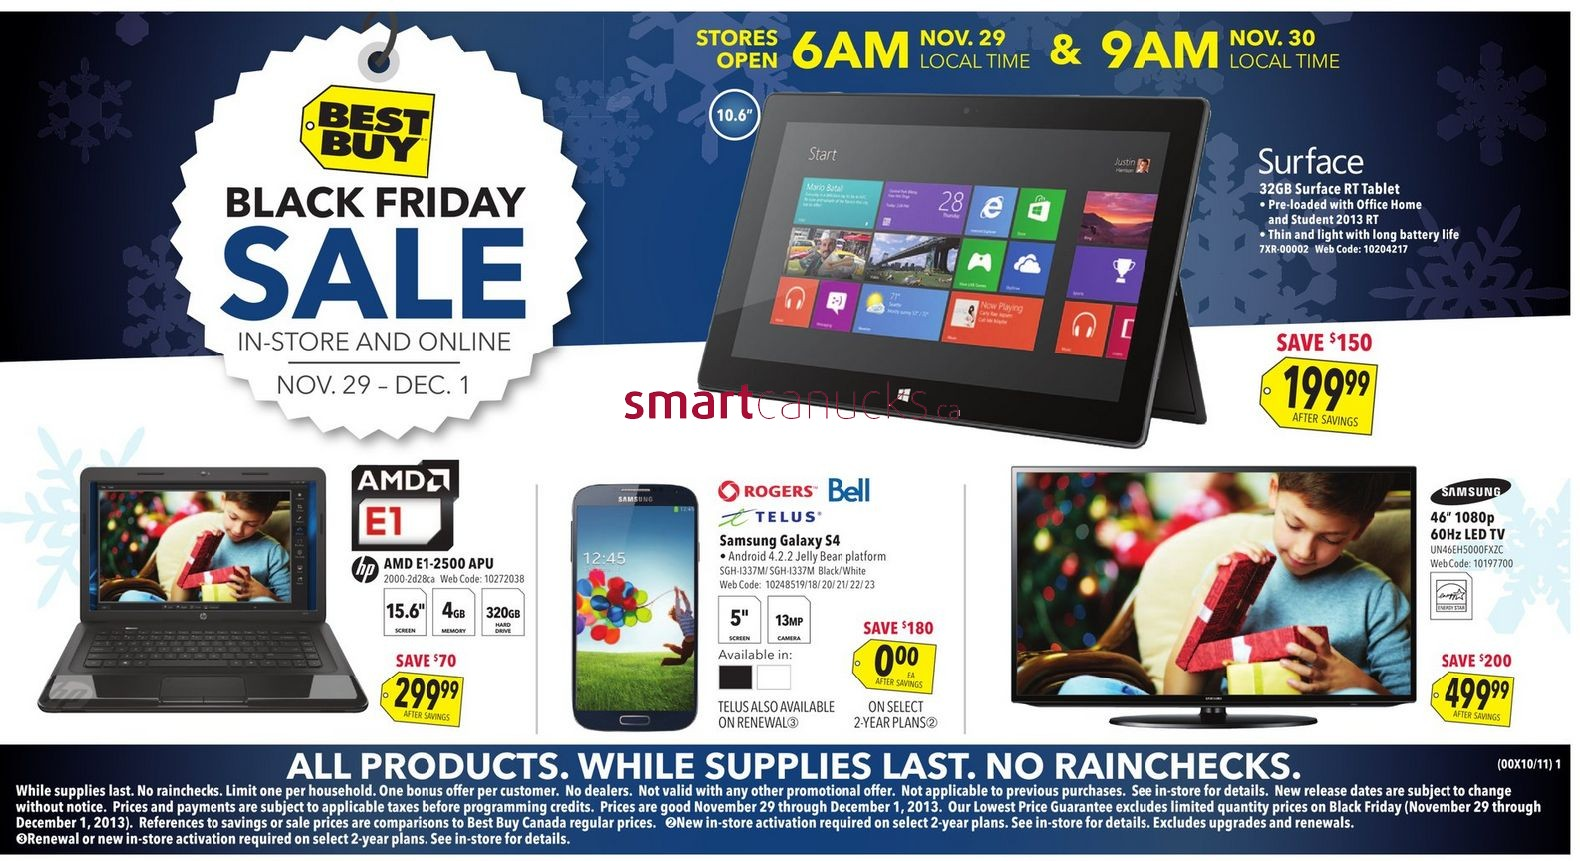 Best Buy Black Friday Continues All Weekend:  Flyer Shows Amazing Deals